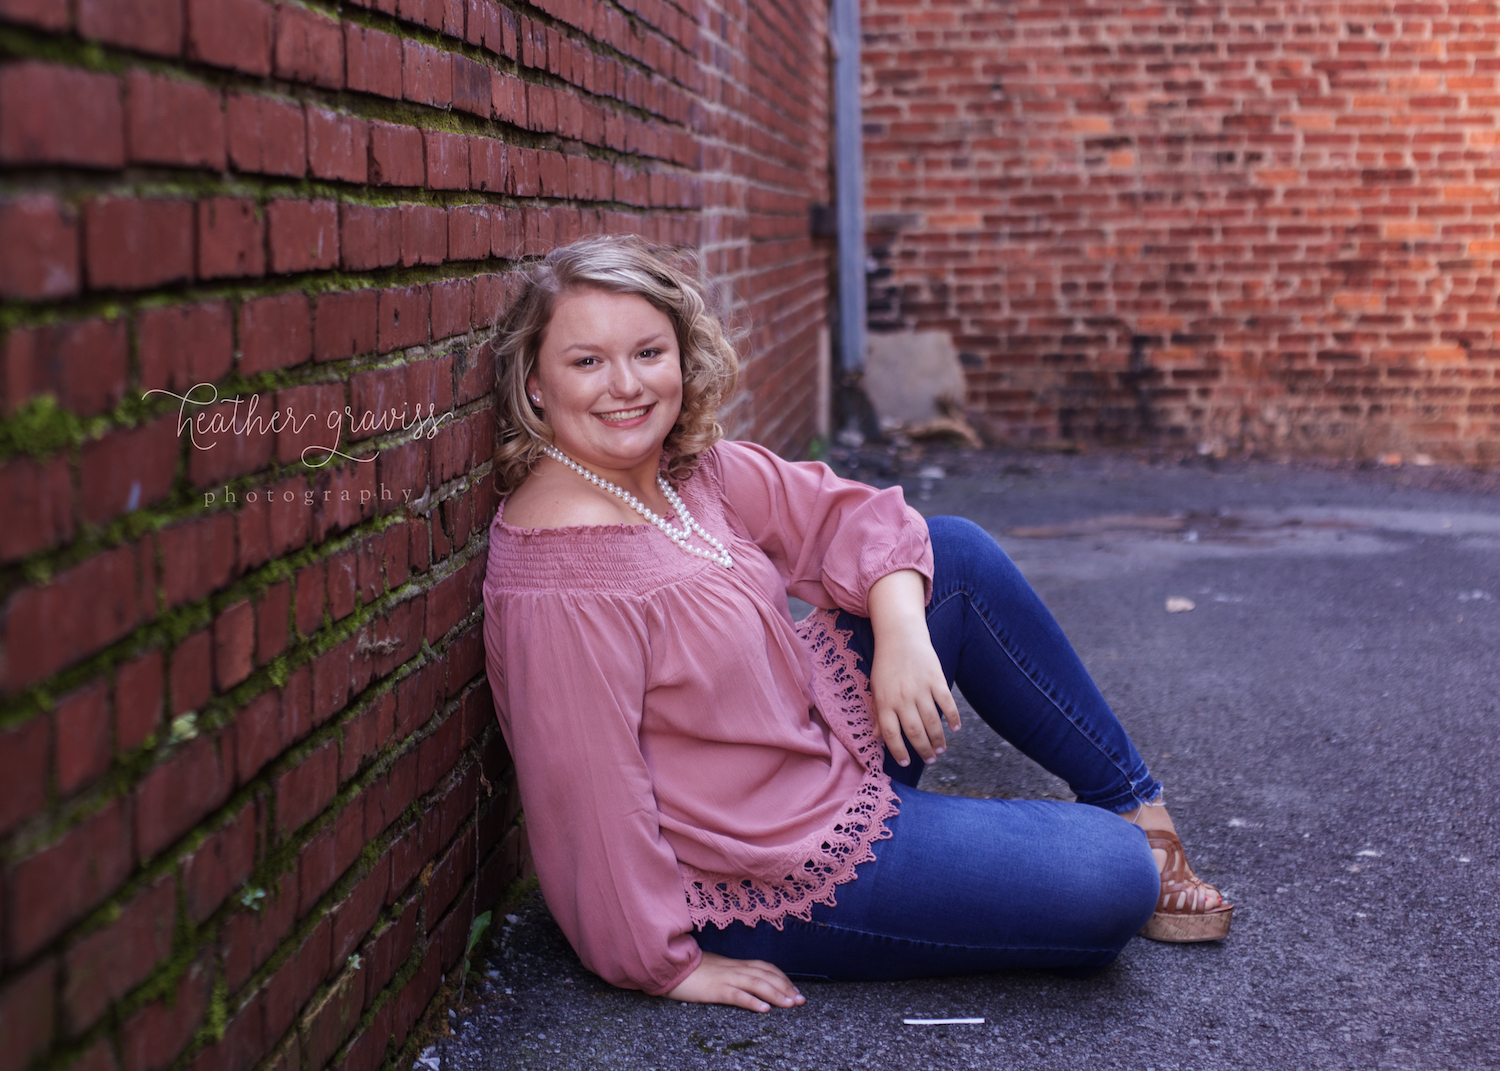 nashville middle tn senior portrait photographer 089.jpg